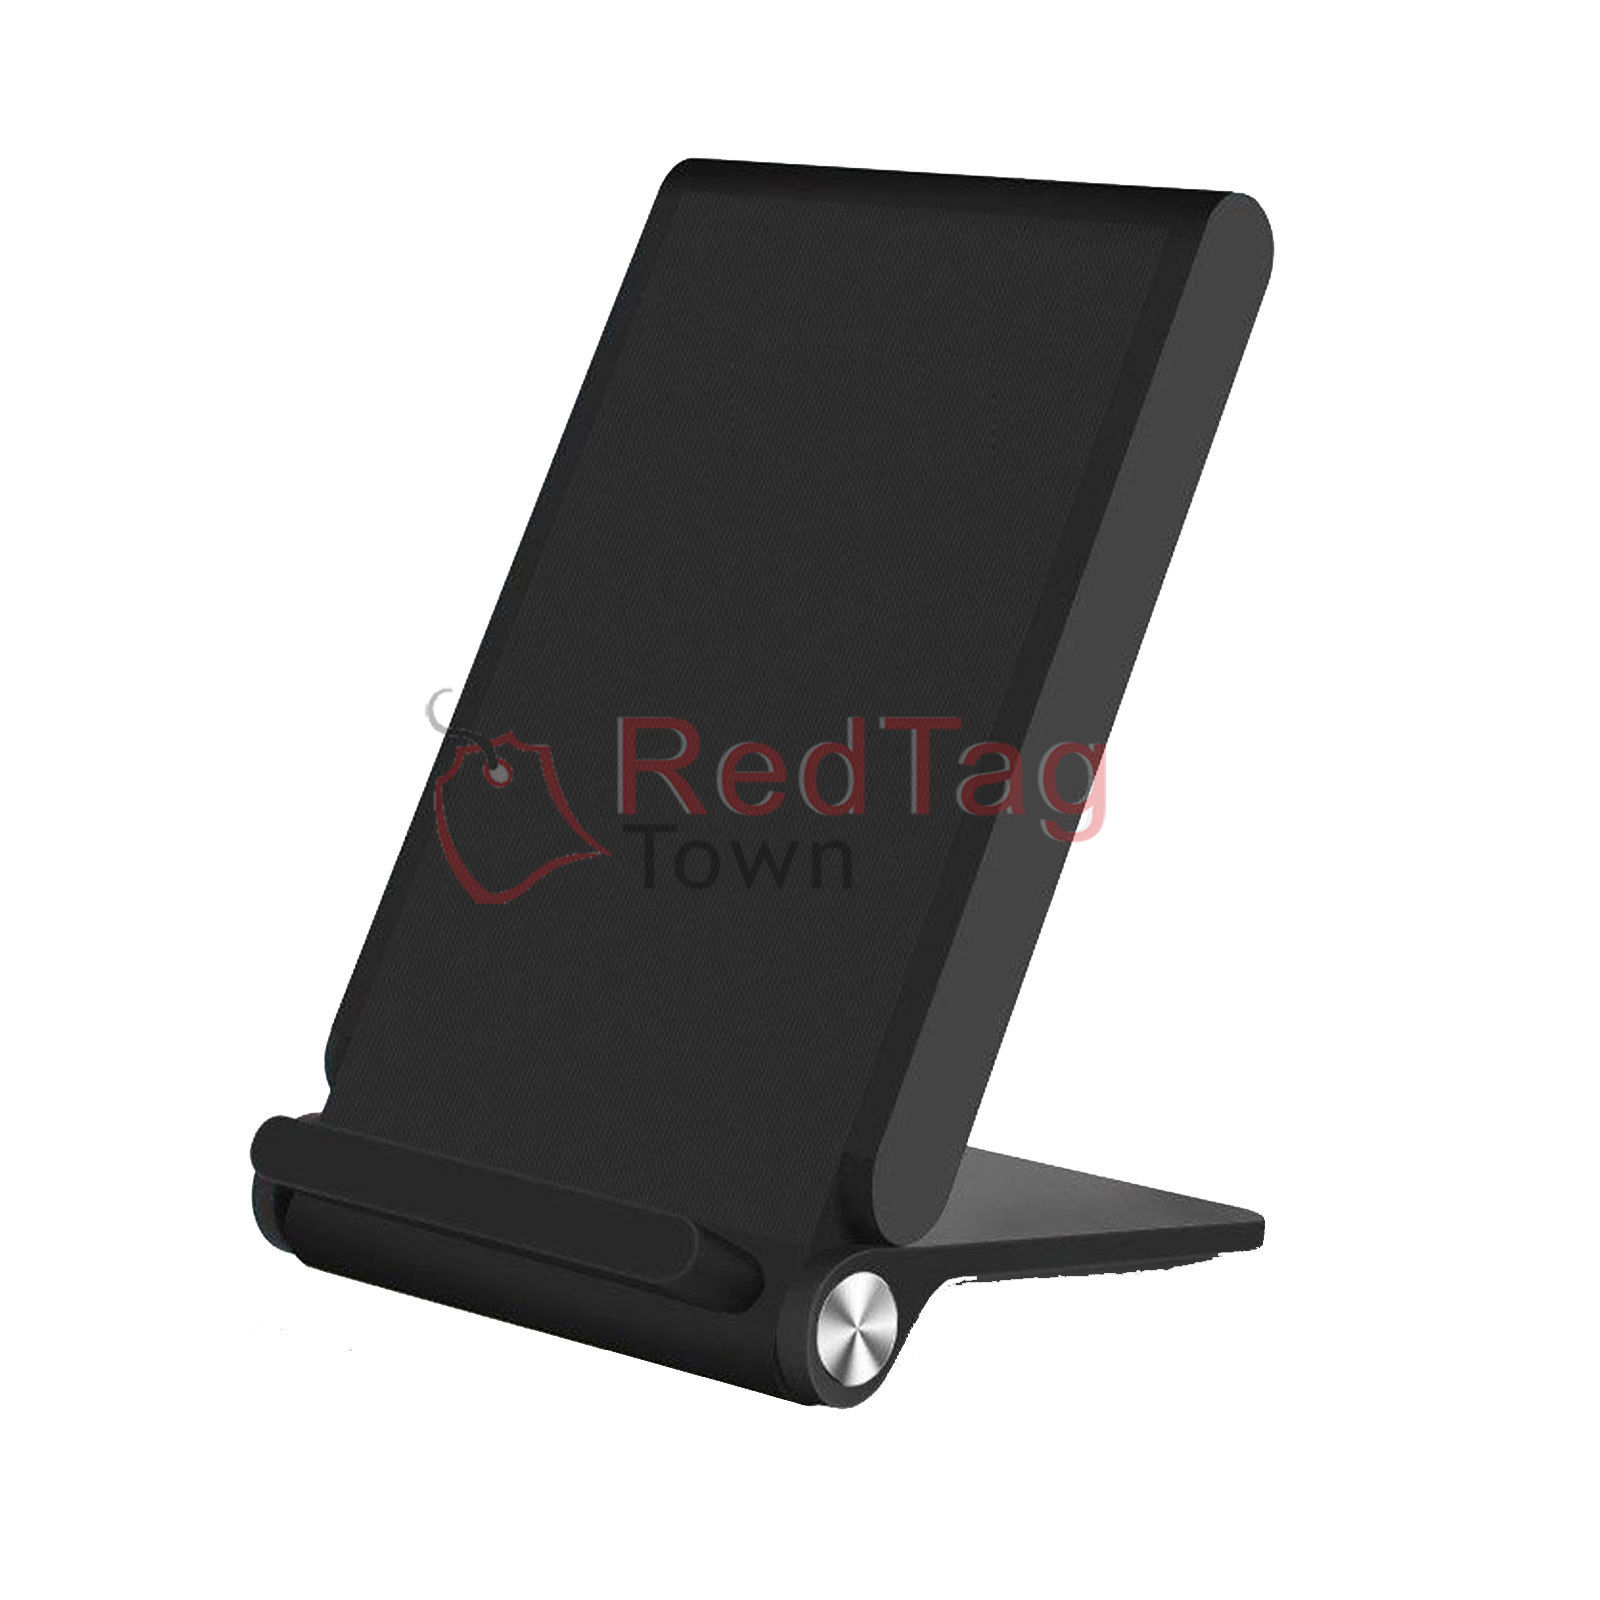 3 coils qi wireless charger pad charging dock stand holder. Black Bedroom Furniture Sets. Home Design Ideas